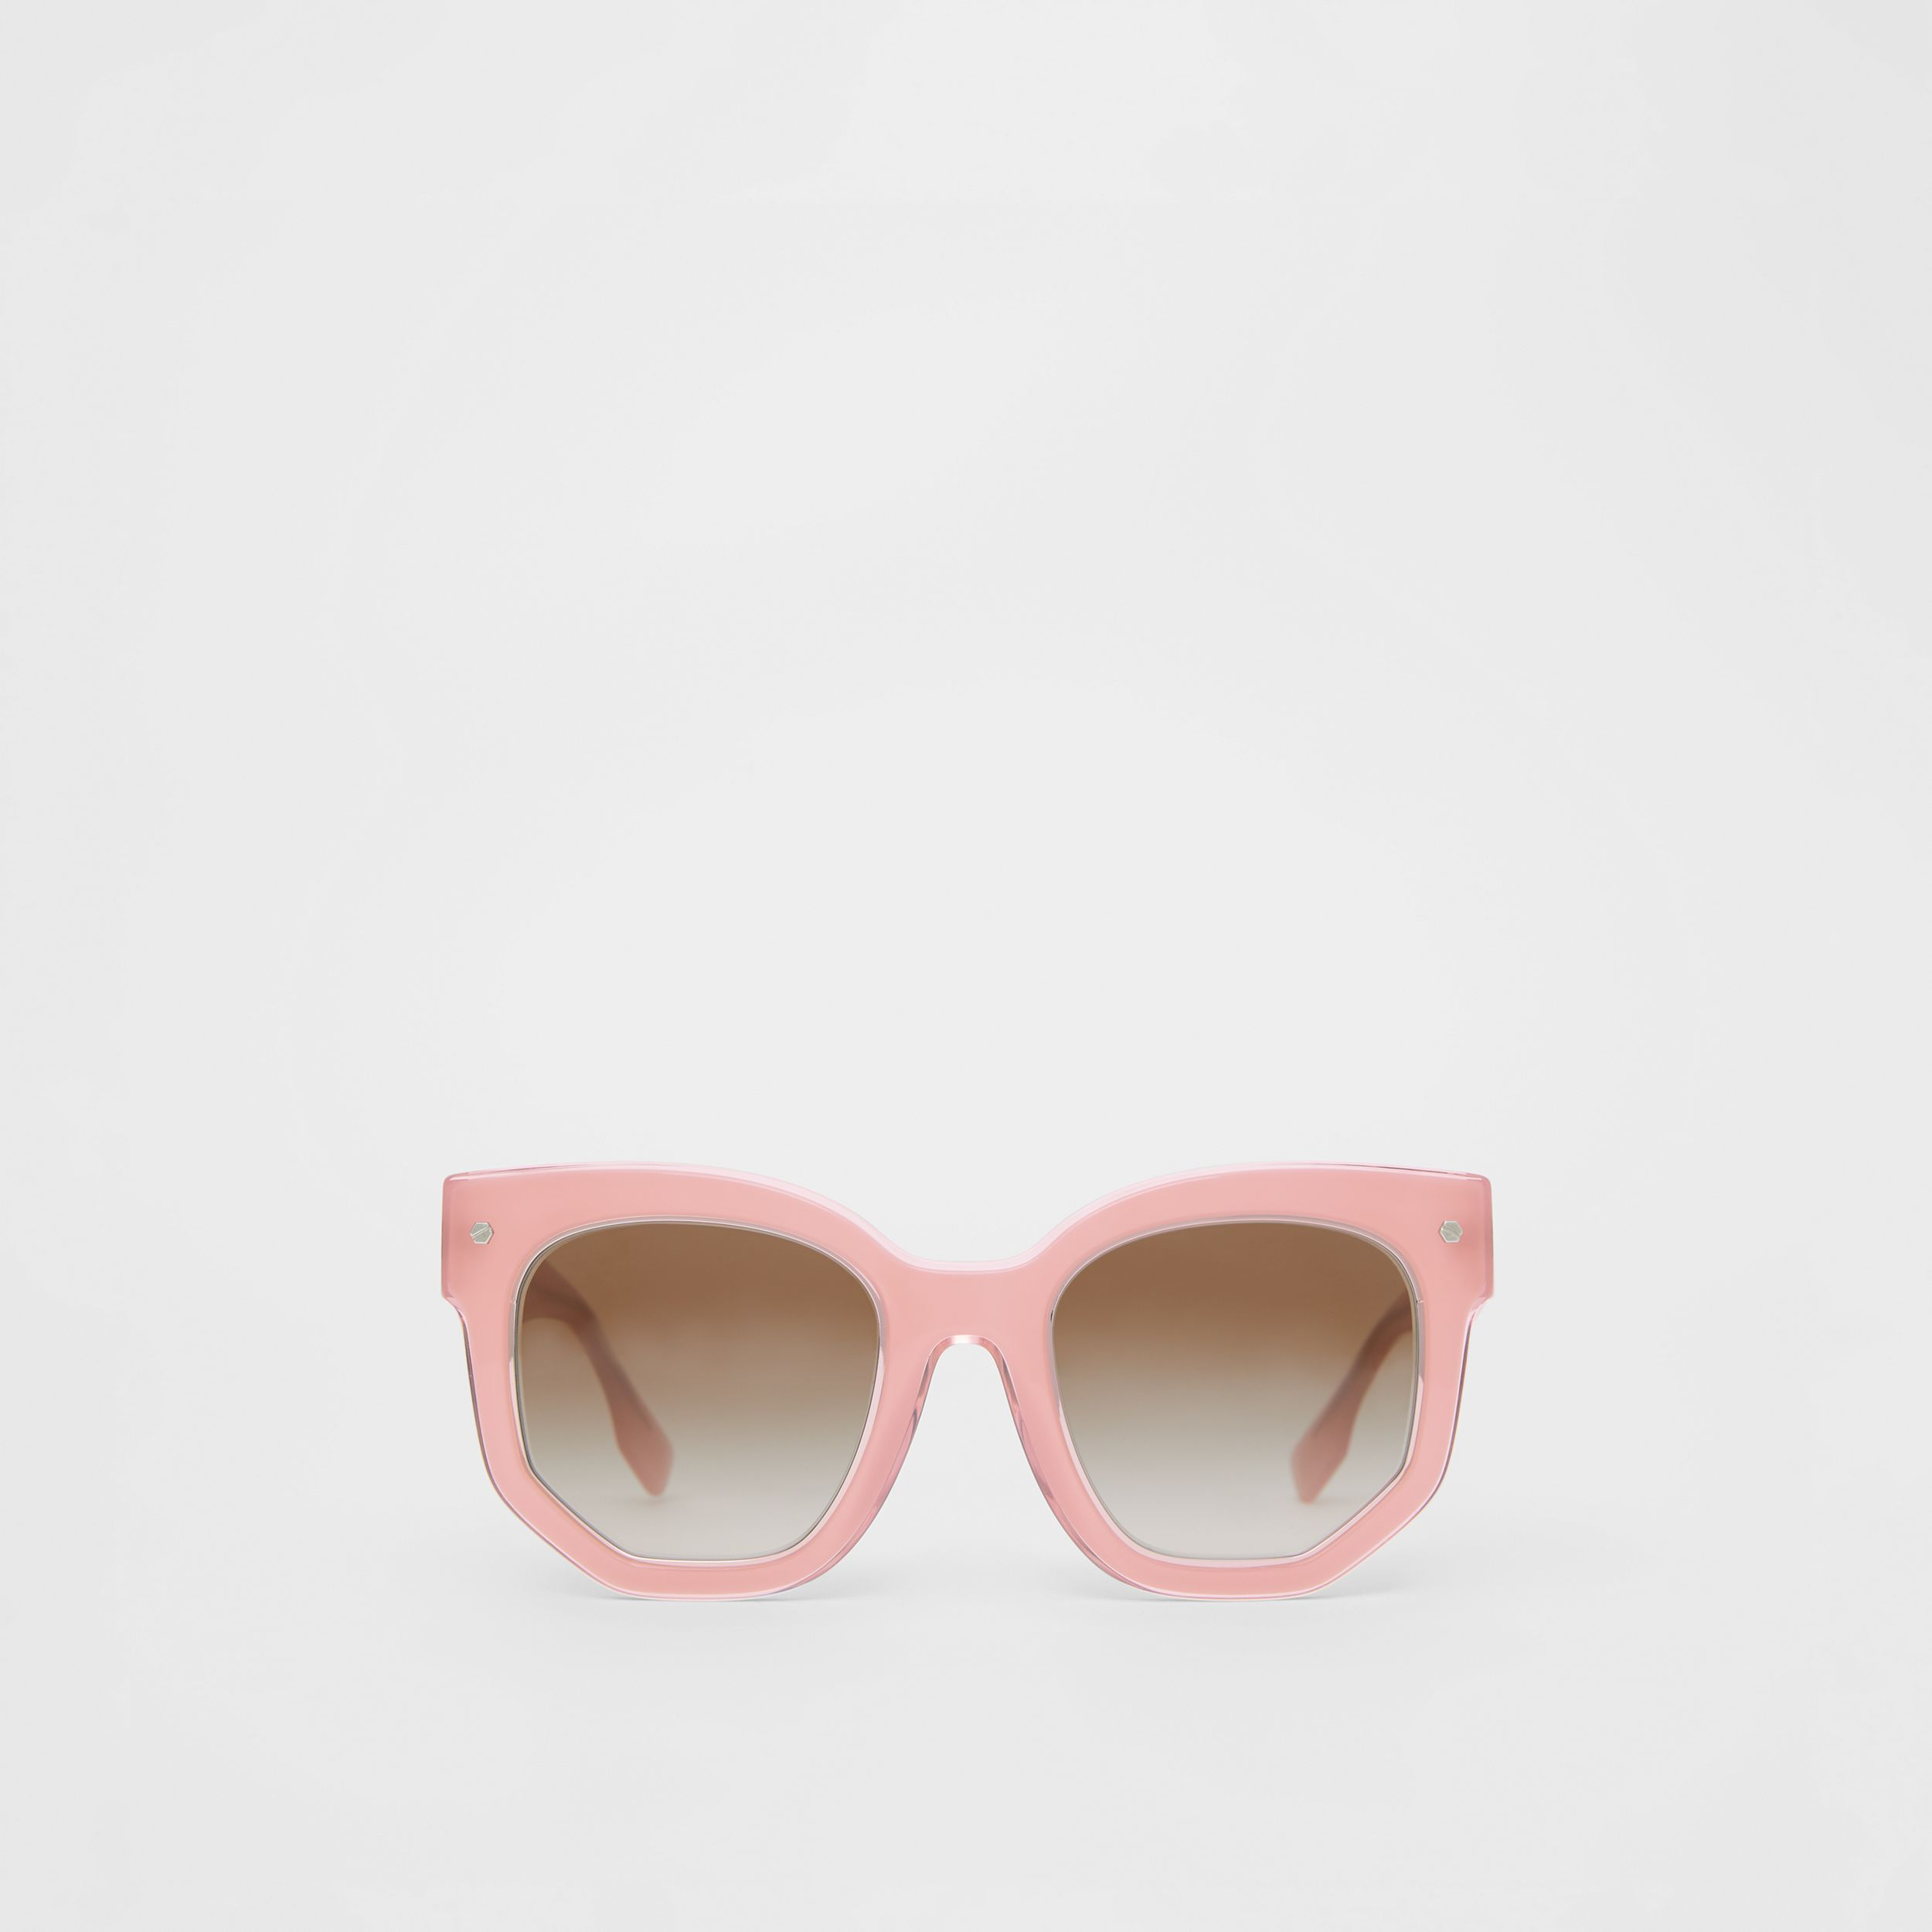 Geometric Frame Sunglasses in Pink - Women | Burberry - 1